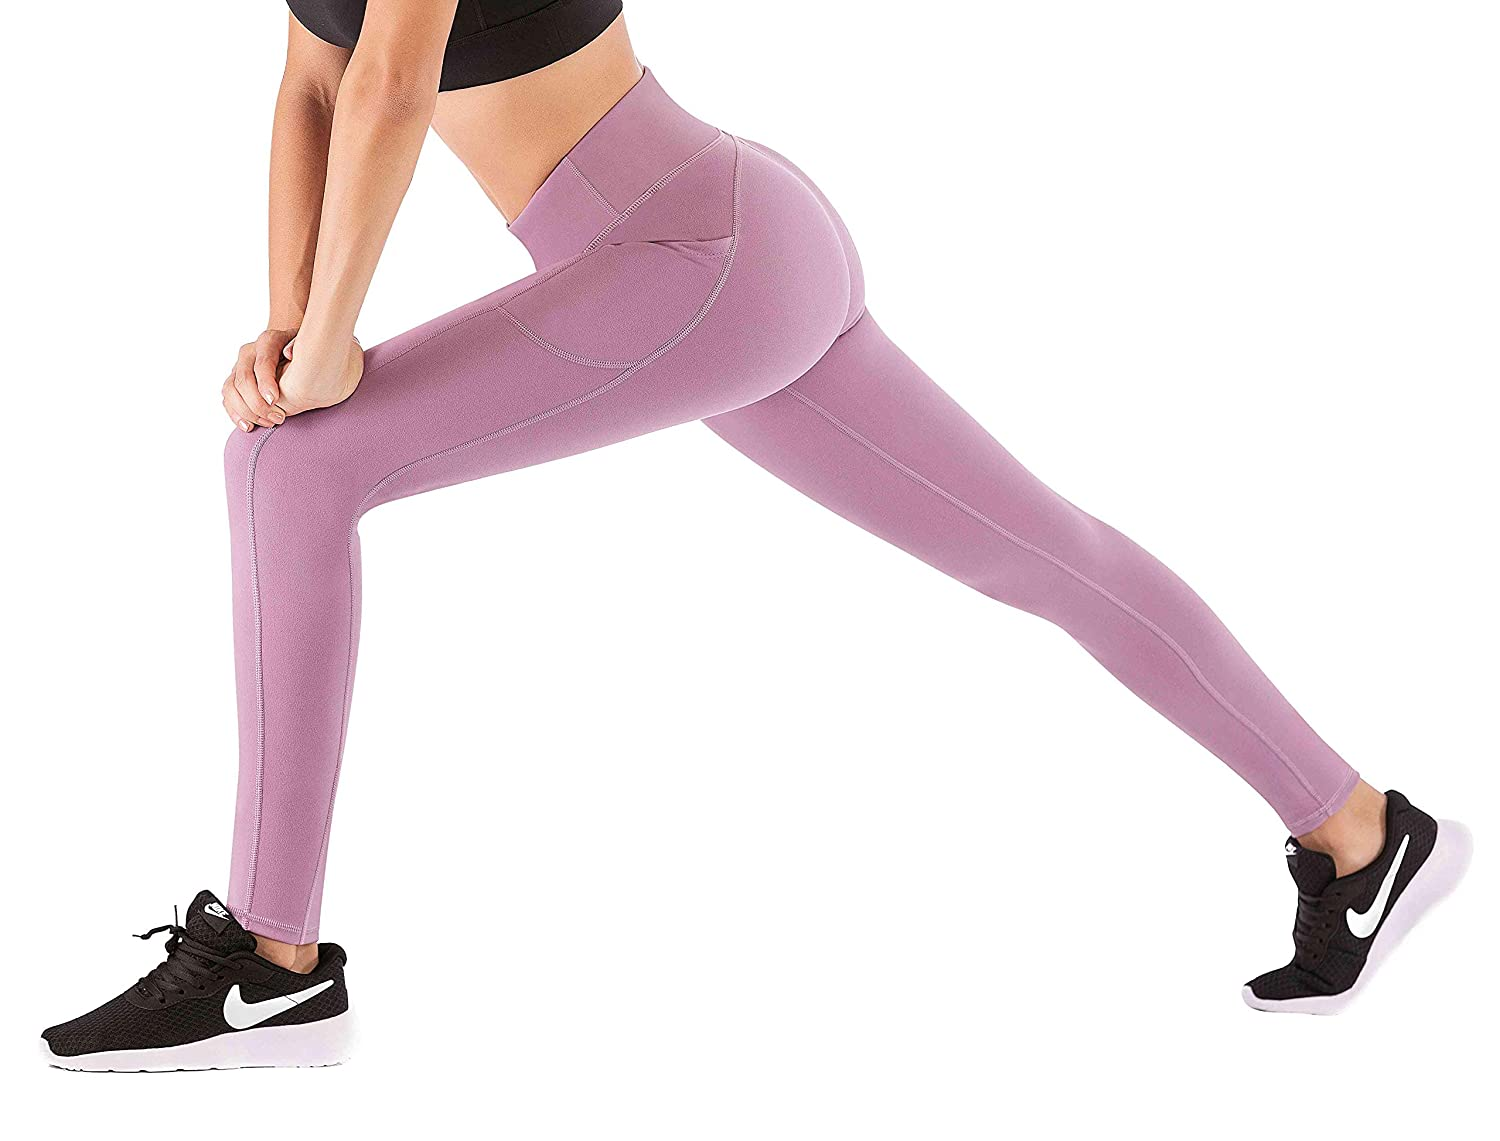 Begonia Pink, X-Large IUGA High Waist Yoga Pants with Pockets Workout Pants for Women 4 Way Stretch Yoga Leggings with Pockets Tummy Control